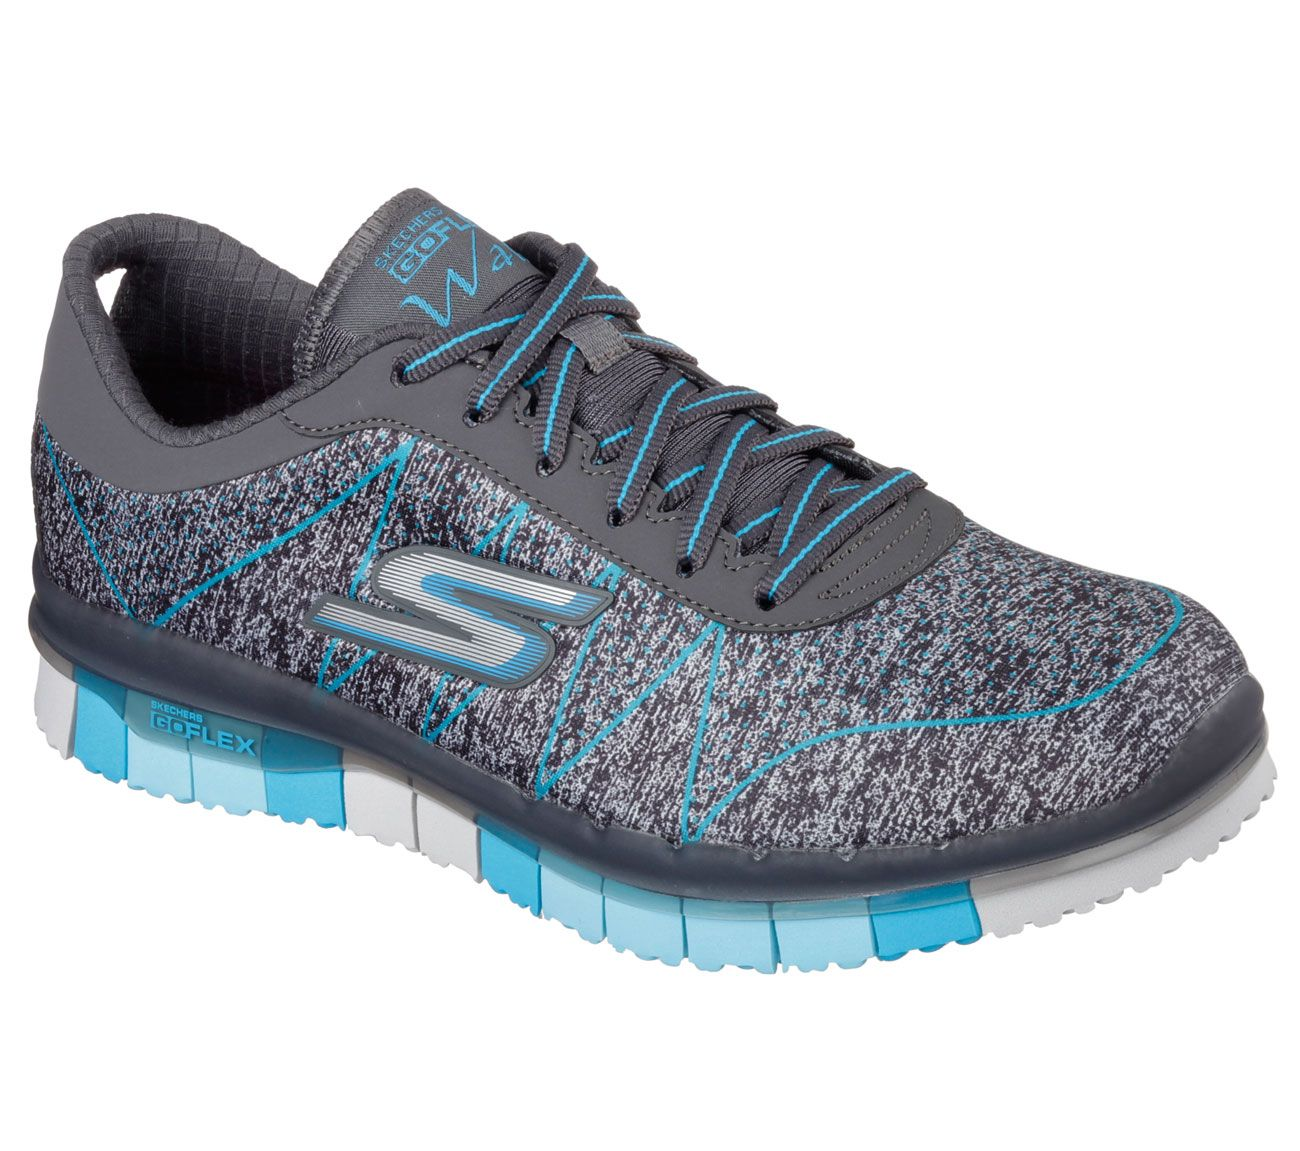 5be11a889574 Buy SKECHERS Skechers GO FLEX Walk - AbilitySkechers Performance Shoes only   75.00